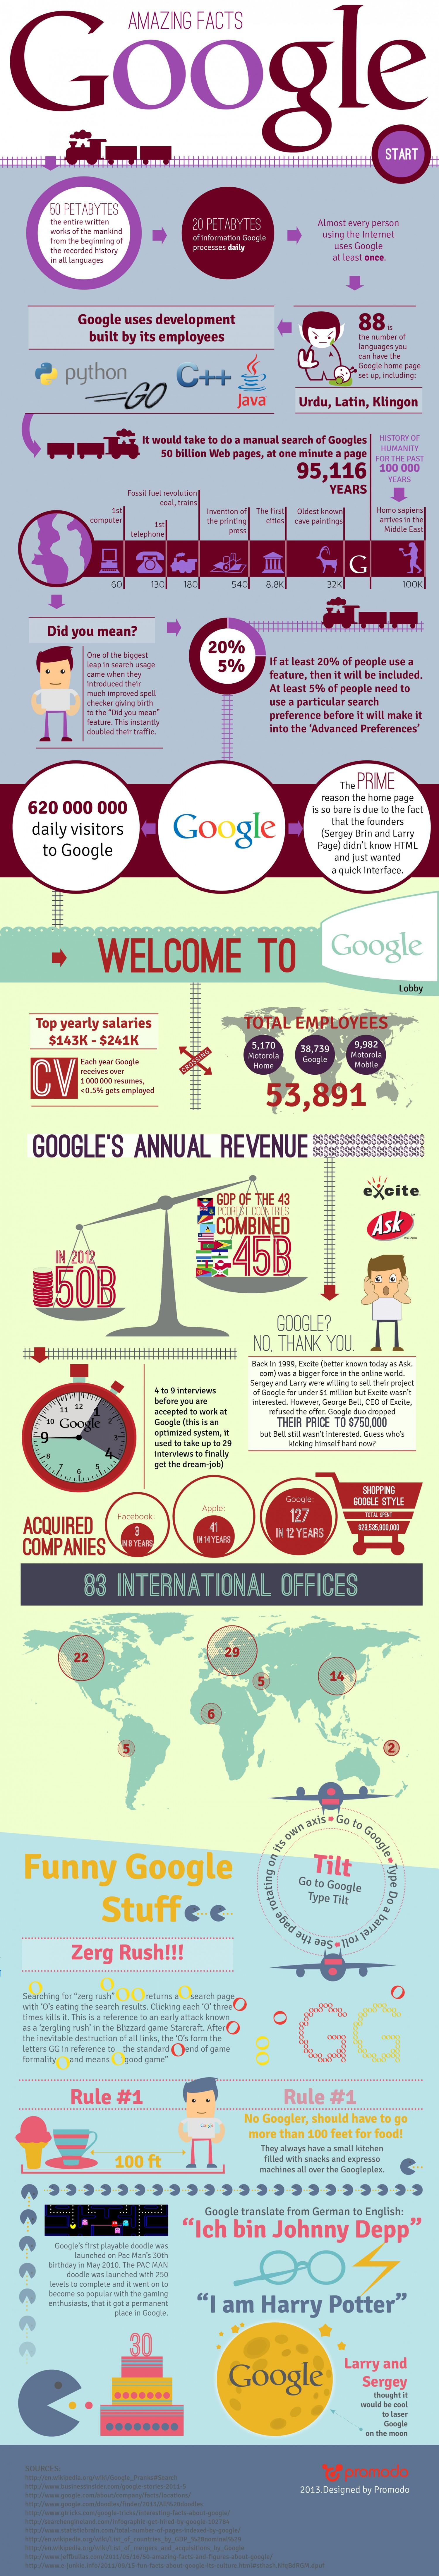 Inspirational Google Facts for Businesses to Learn From